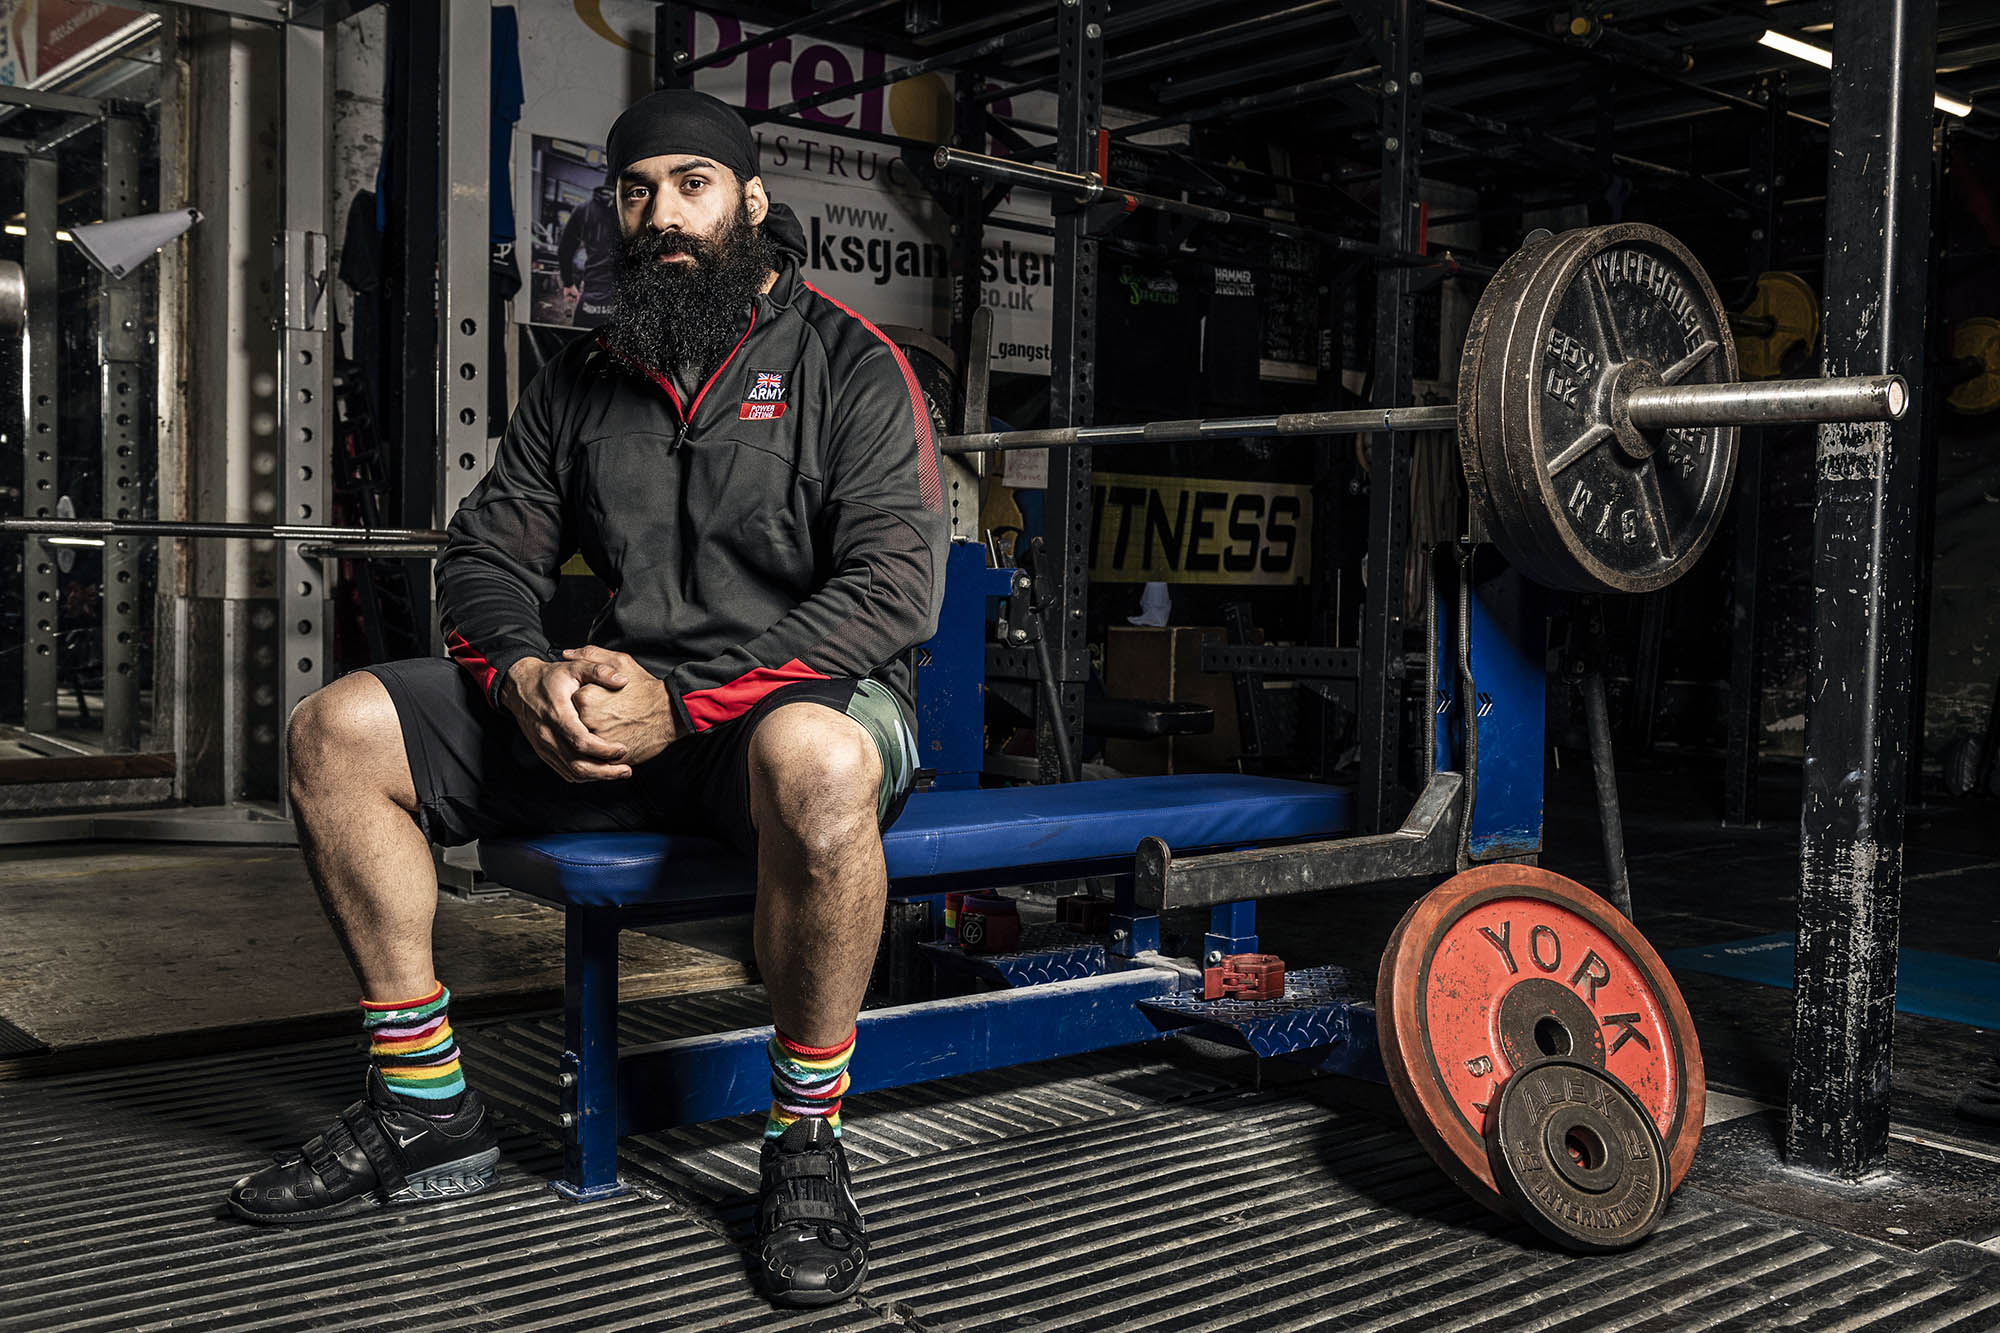 Indy-Dhillon-Defence-Equipment-and-Support-DE&S-Powerlifter-Gold-Medal-Winner-Commonwealth-Championships